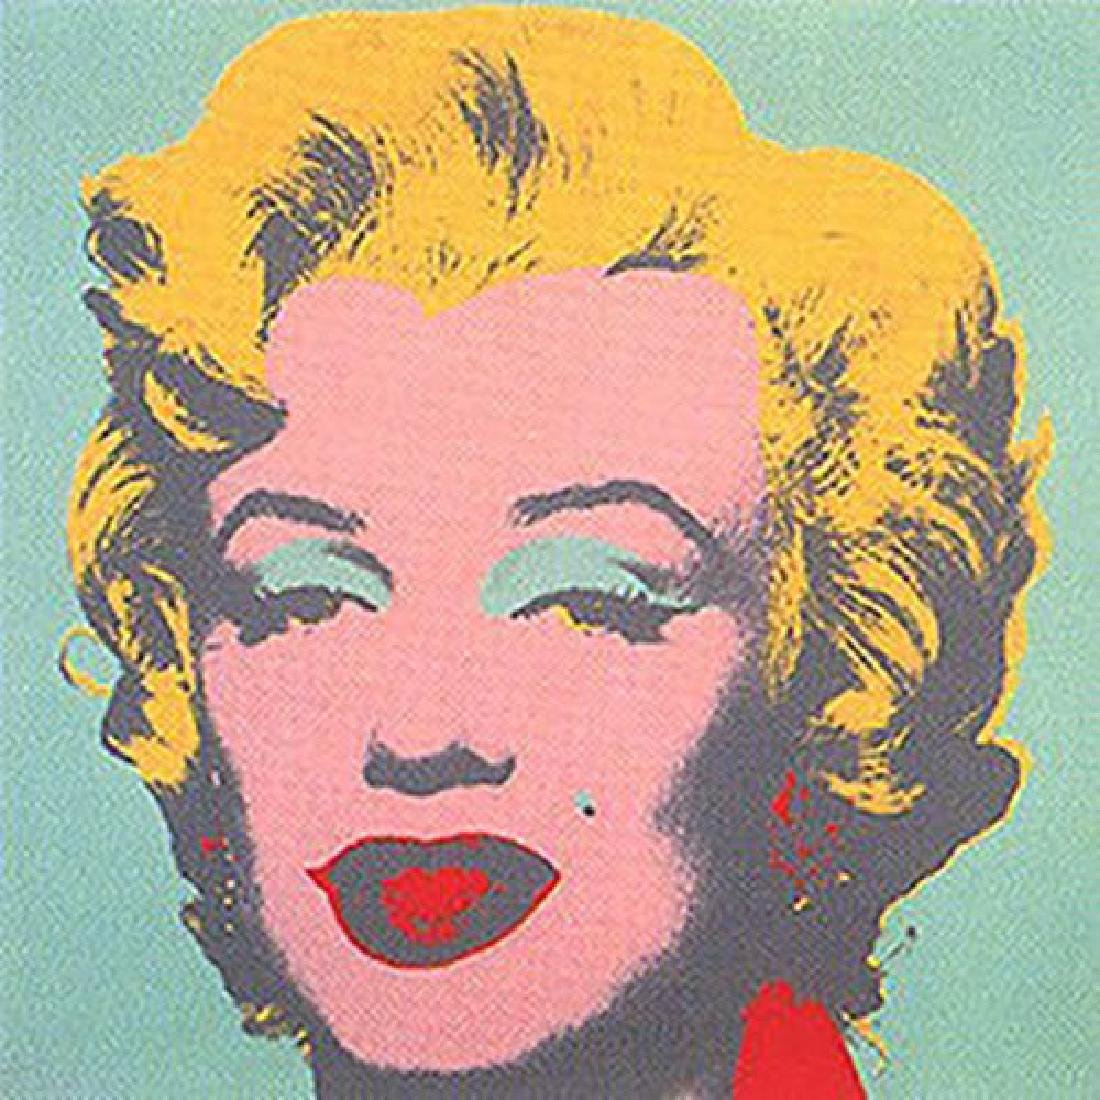 ANDY WARHOL MARILYN II.23 SUNDAY B. MORNING SCREENPRINT